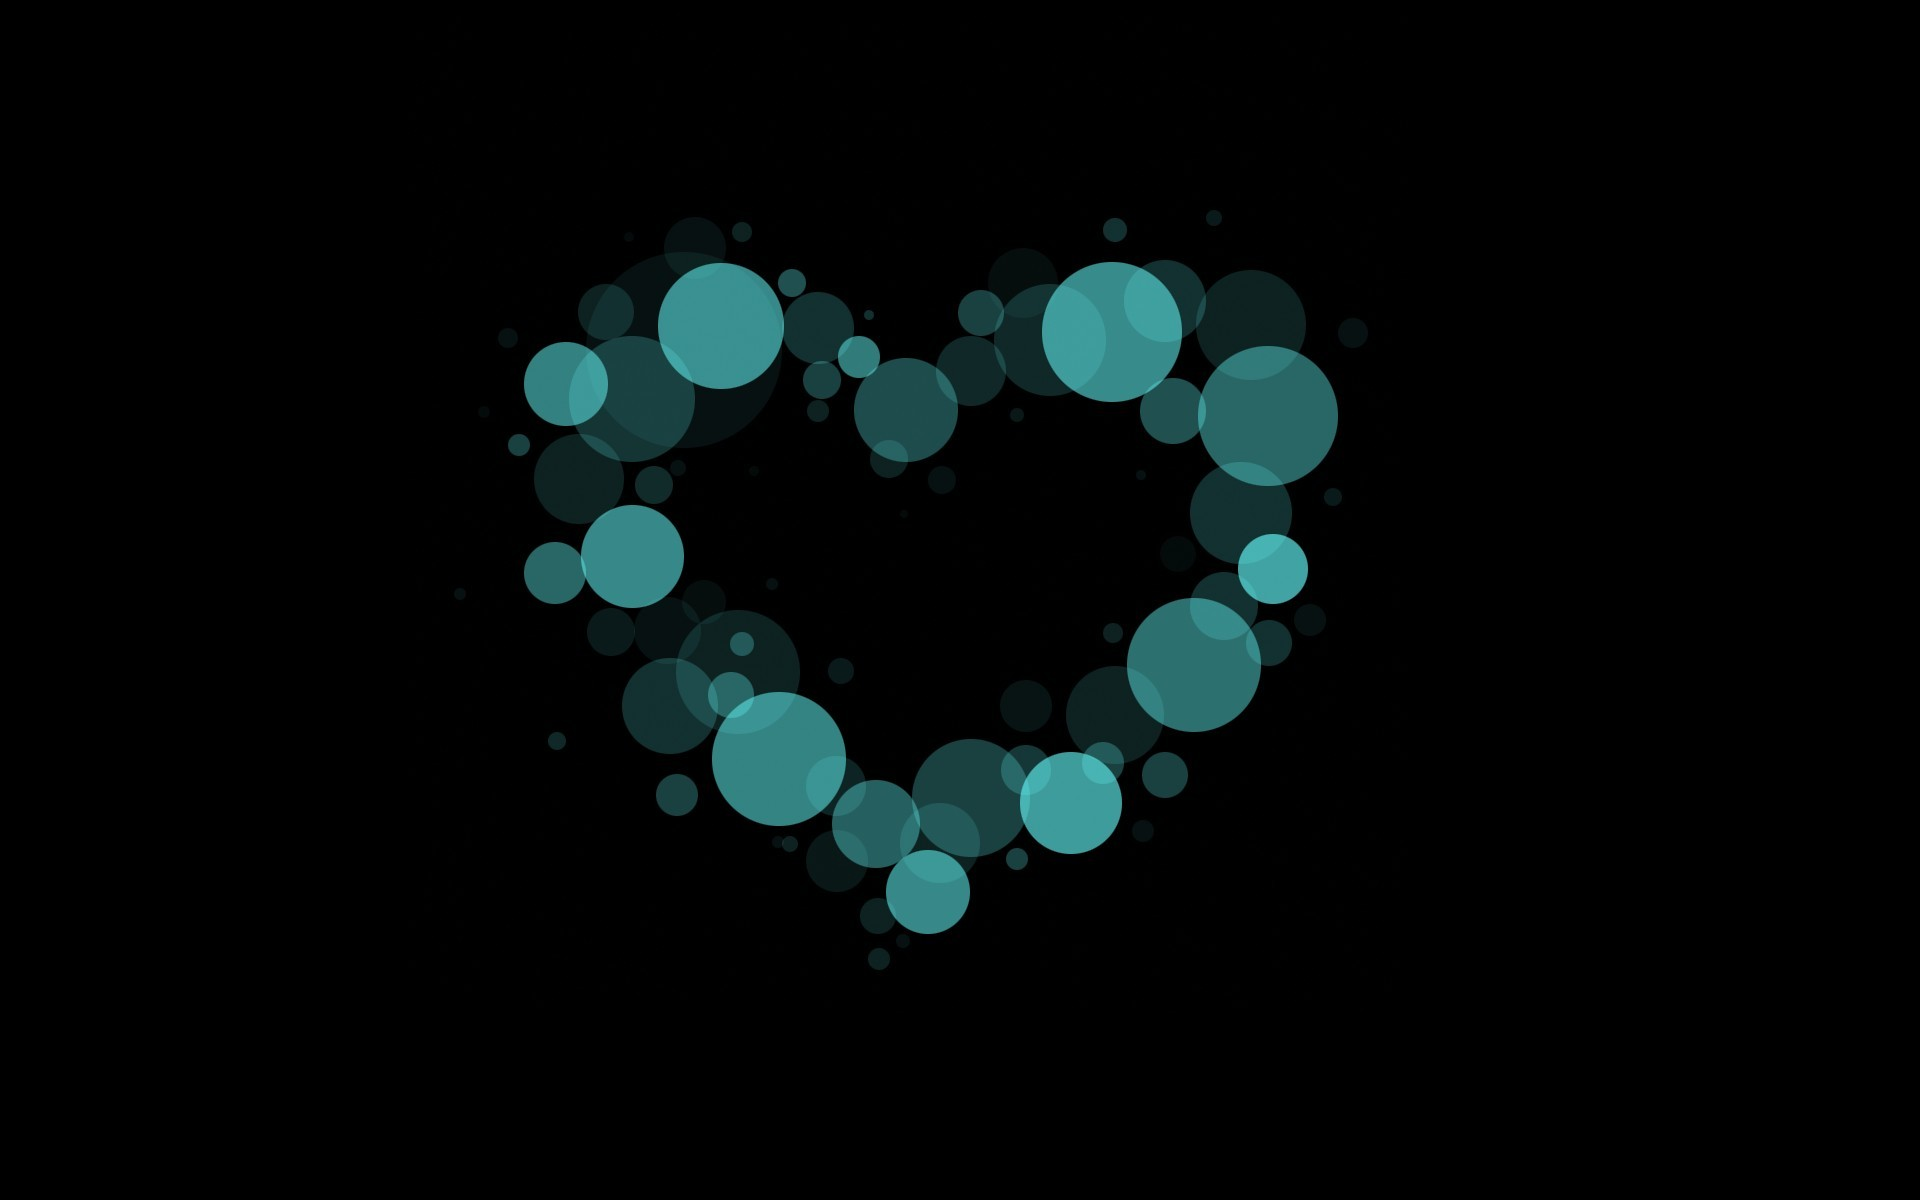 Abstract Heart Shape Wallpapers